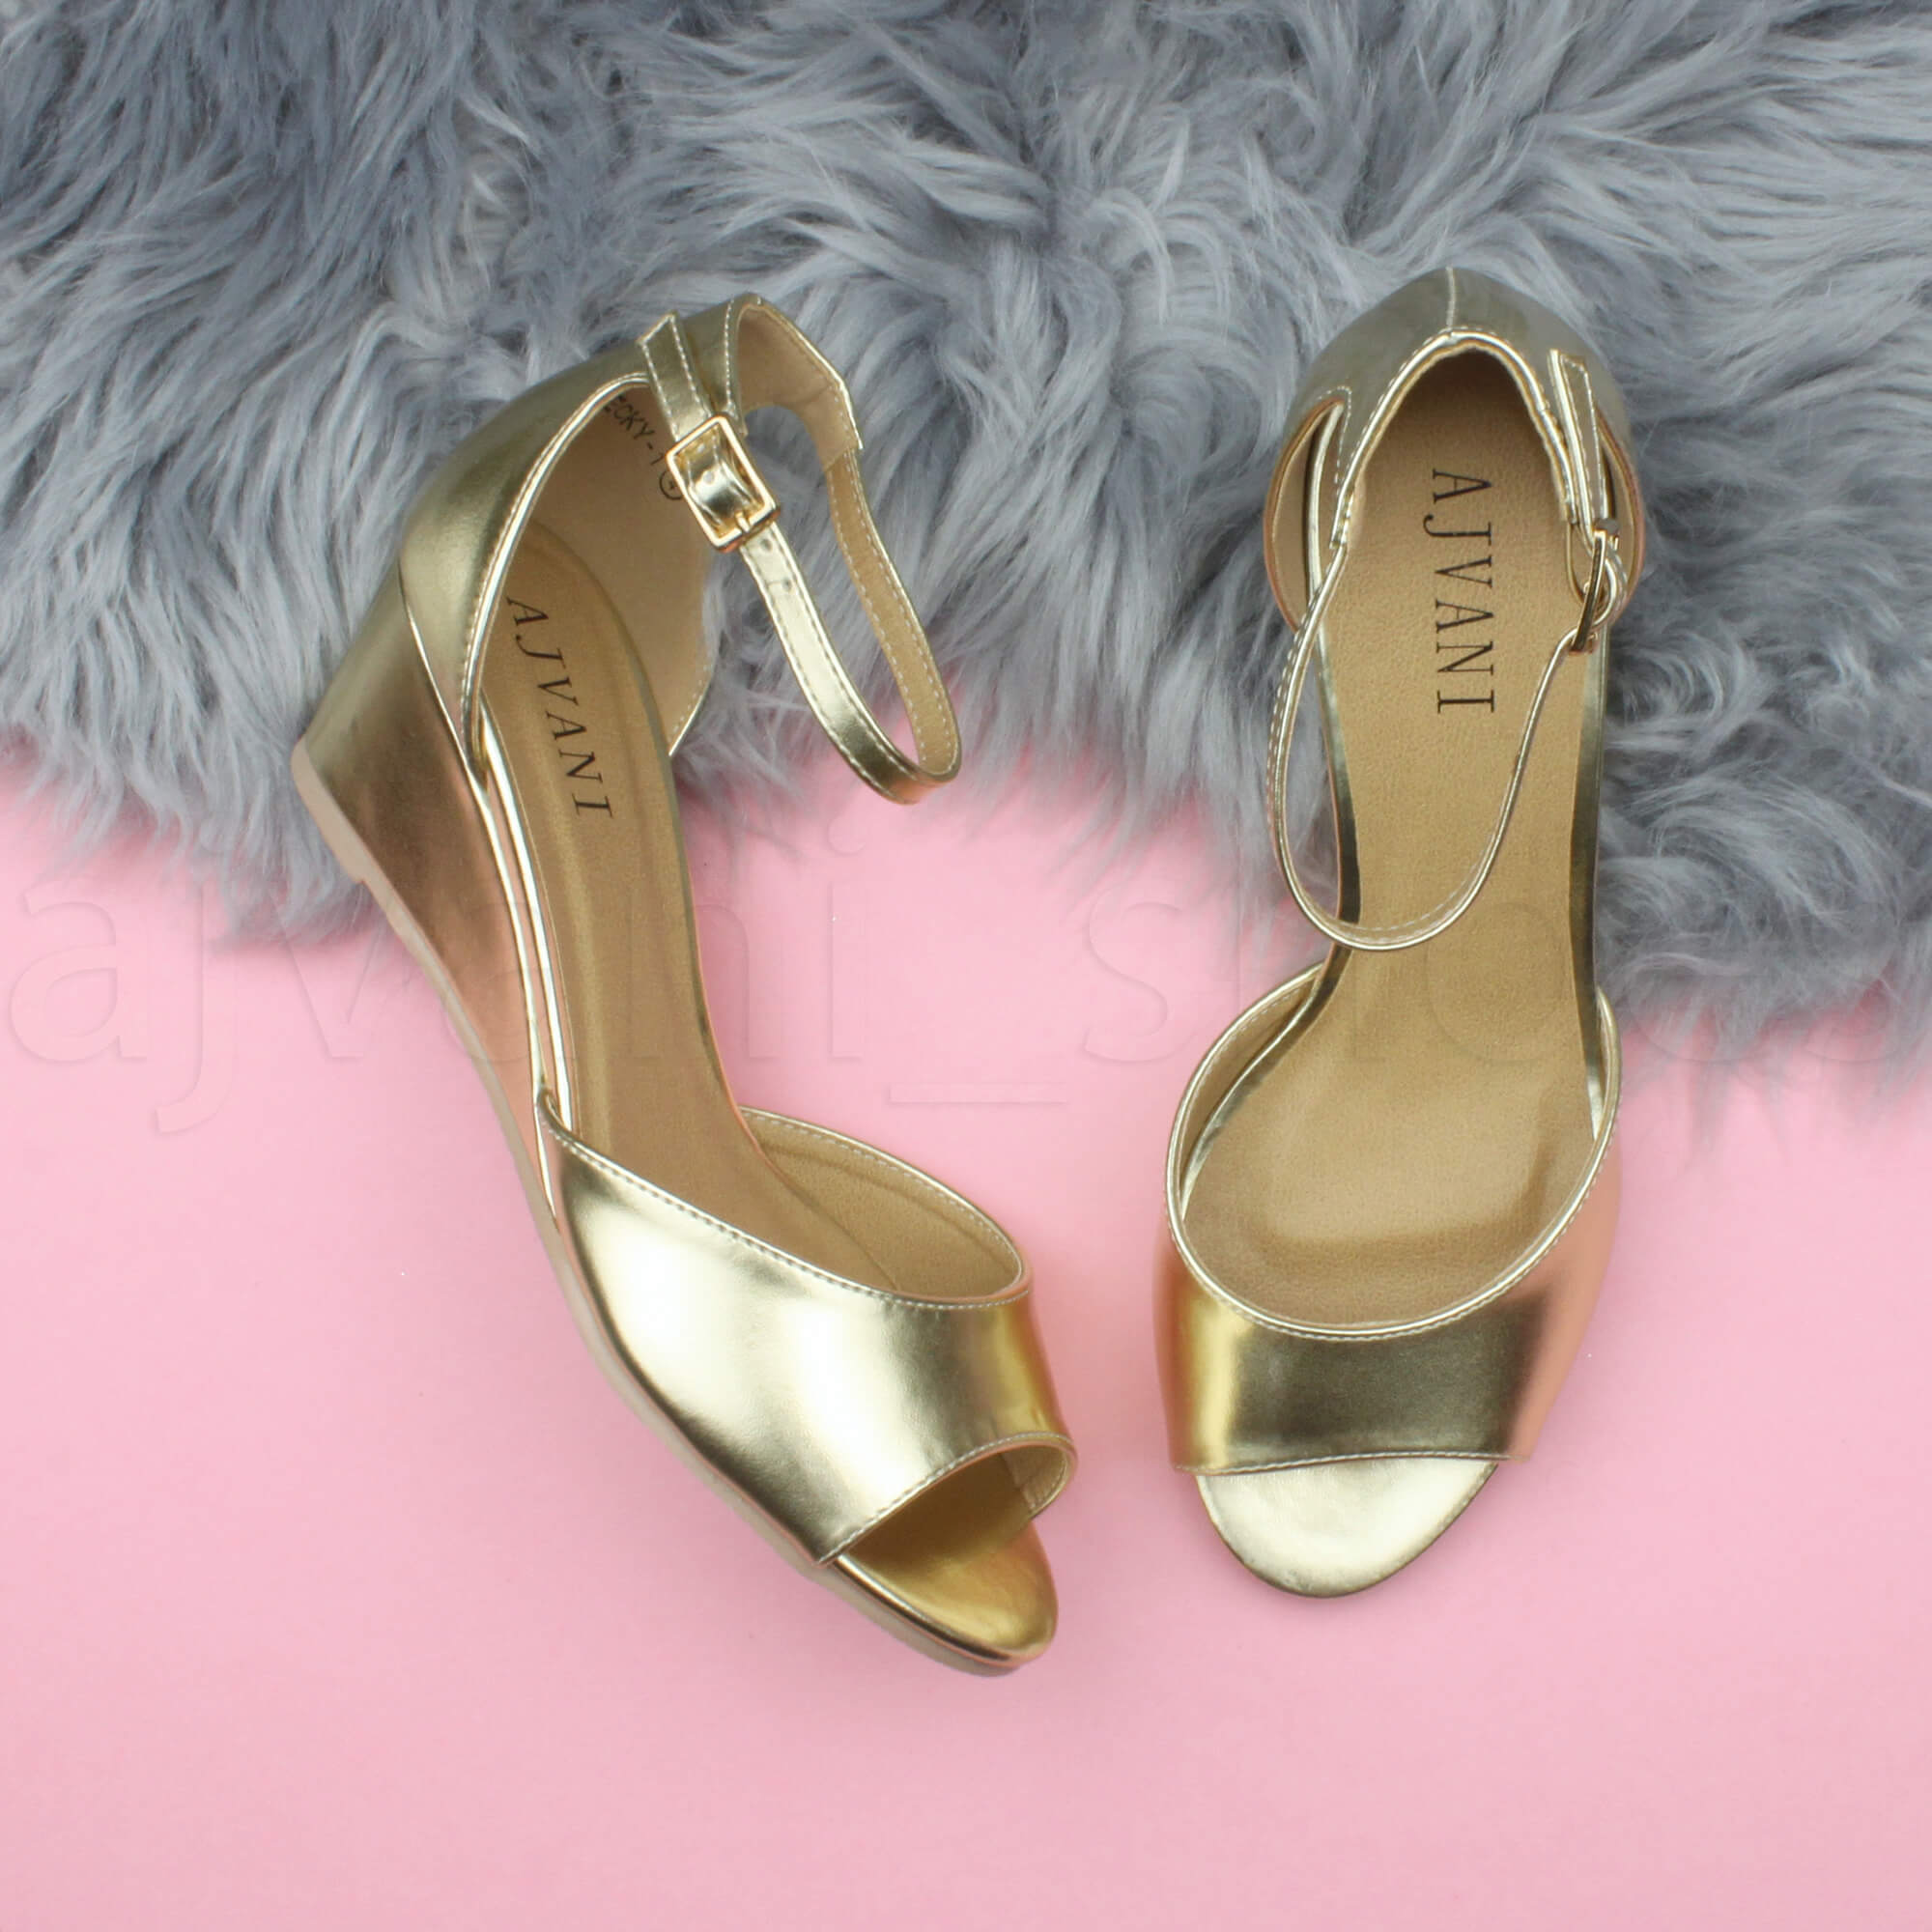 WOMENS-LADIES-LOW-MID-WEDGE-HEEL-ANKLE-STRAP-SMART-CASUAL-EVENING-SANDALS-SIZE thumbnail 61